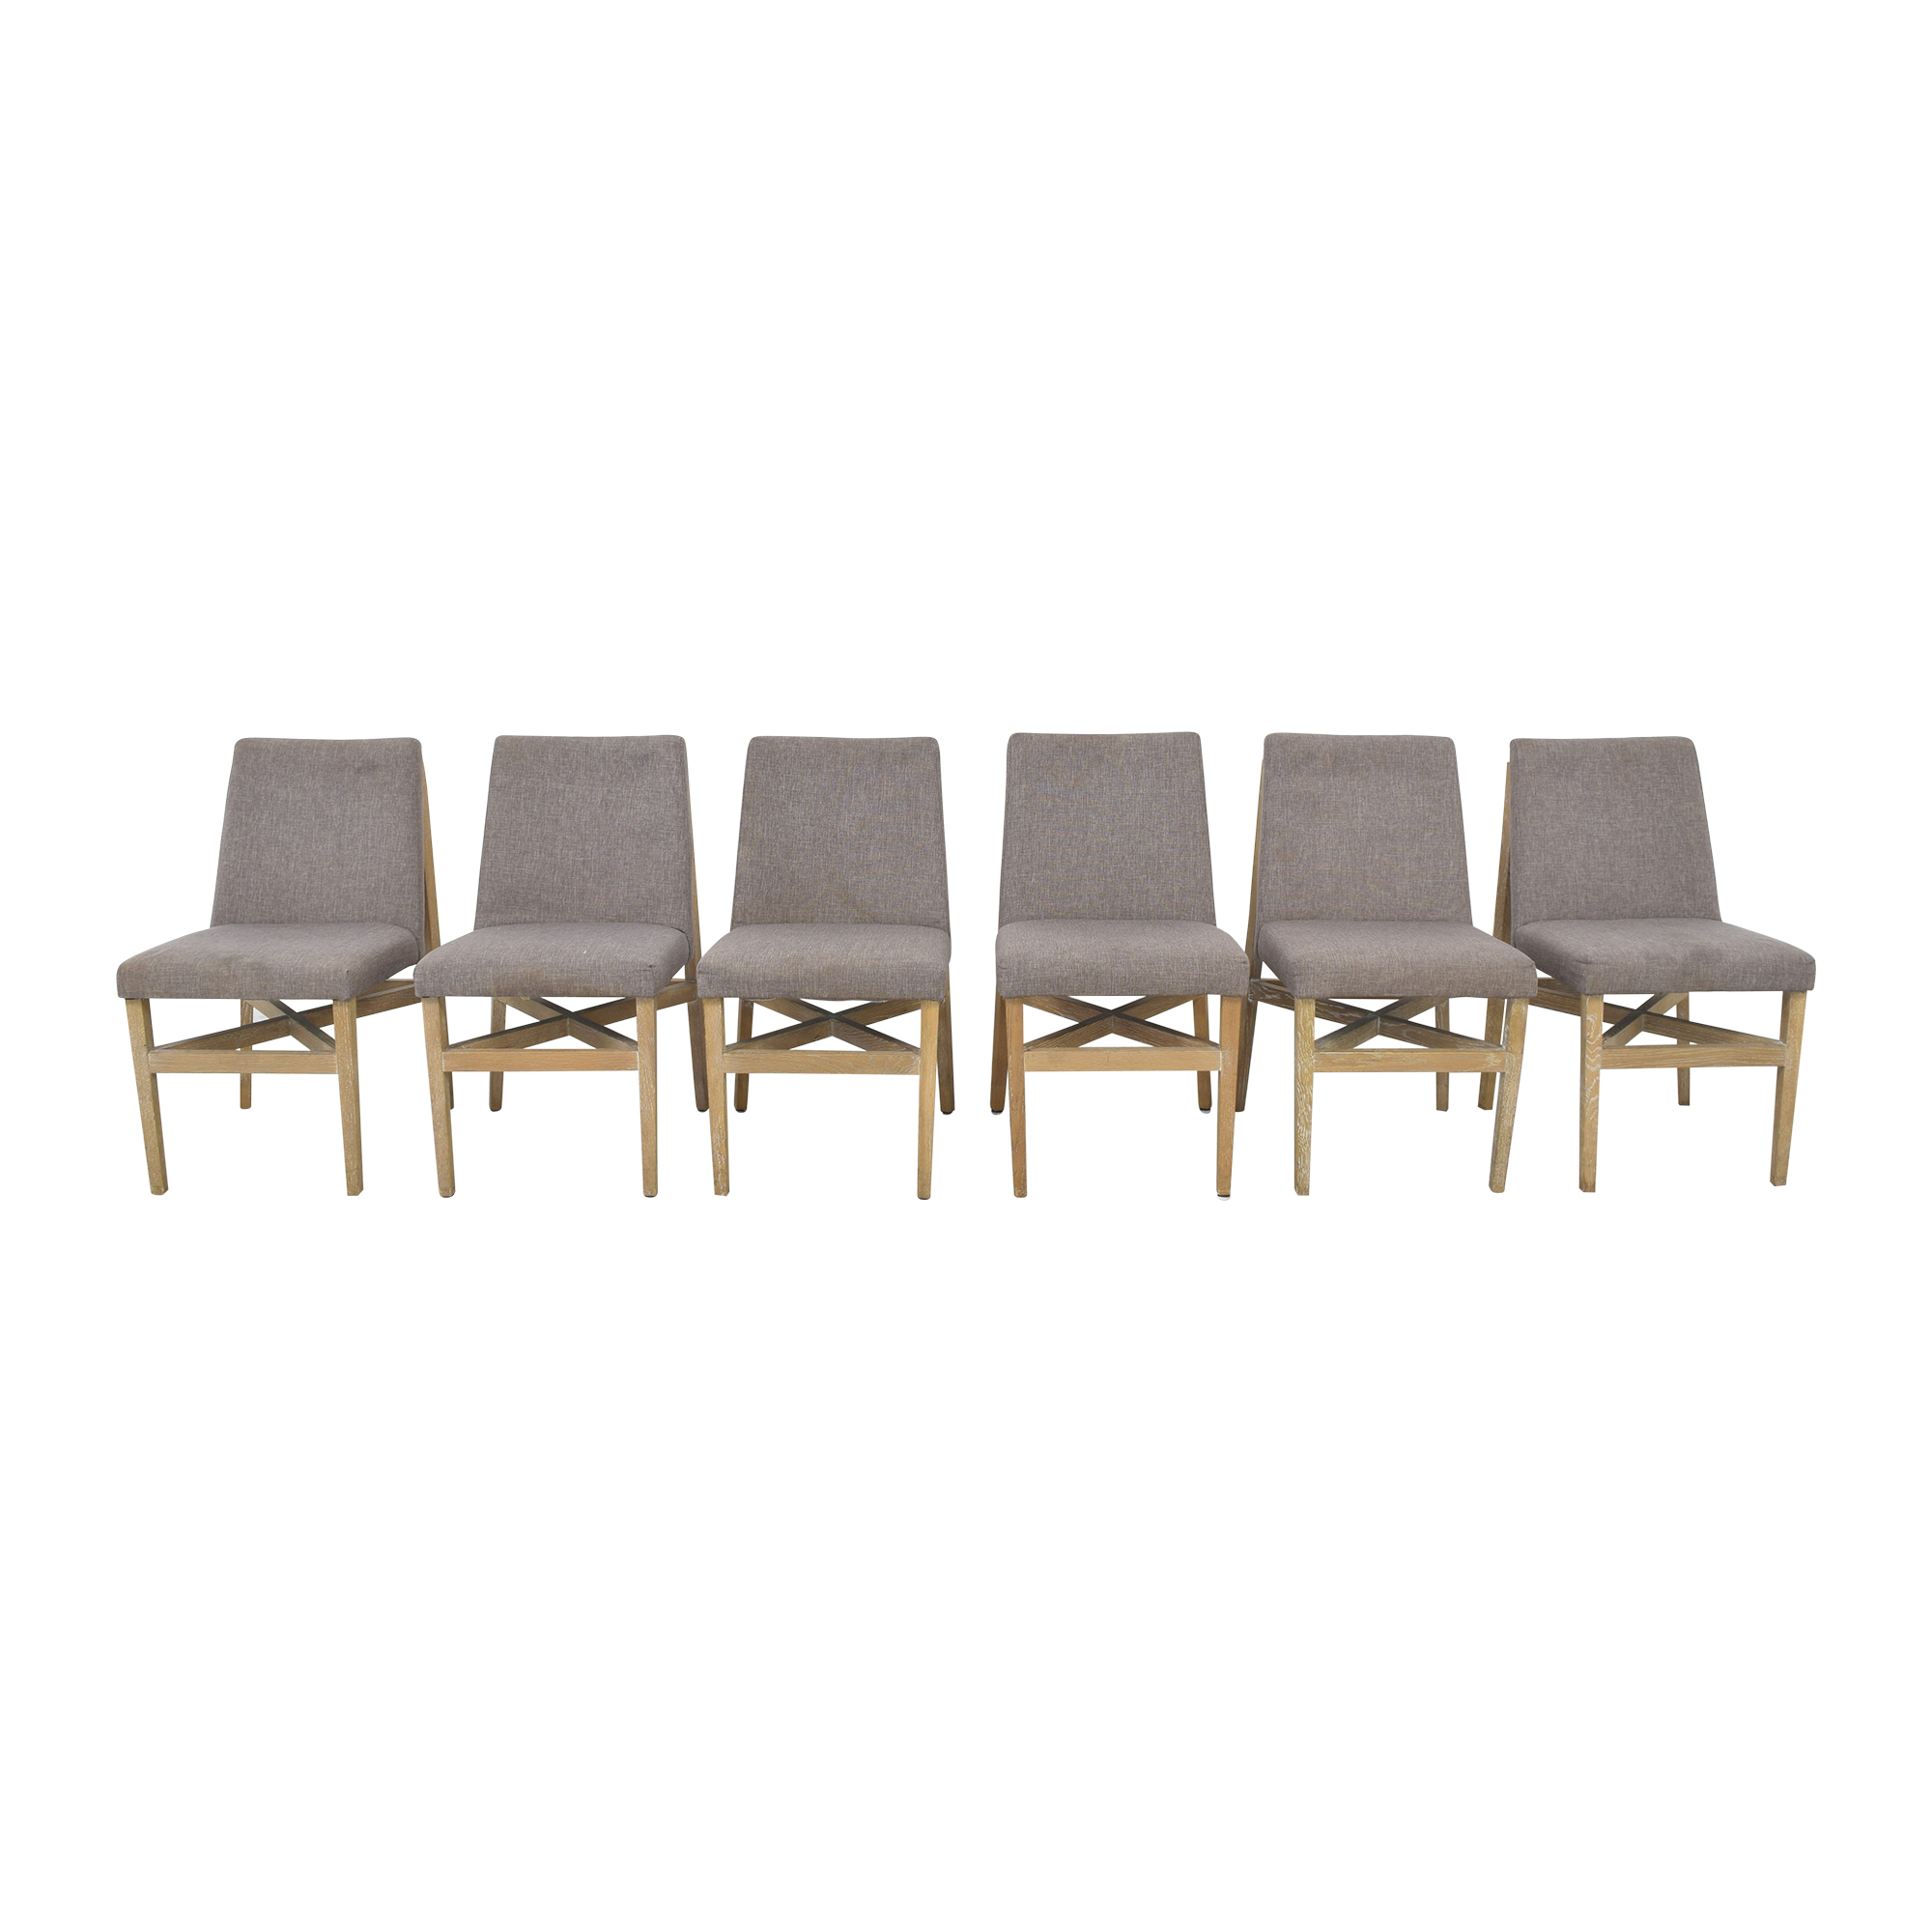 buy  Mid-Century Style Dining Chairs online